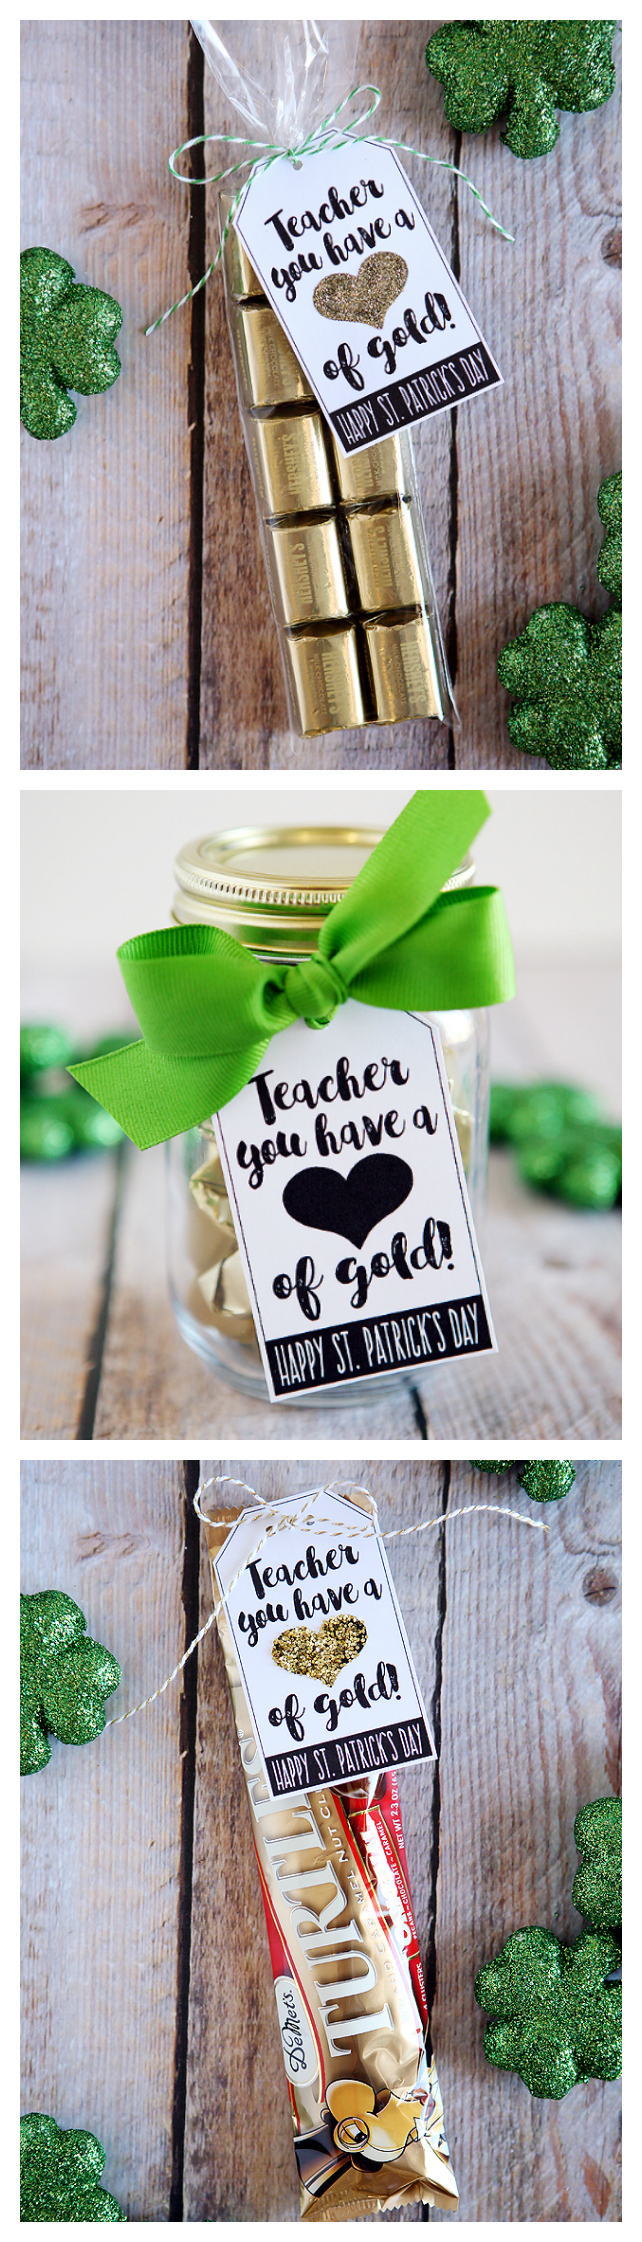 Teacher You Have A Heart Of Gold | St. Patrick's Day Teacher Gift